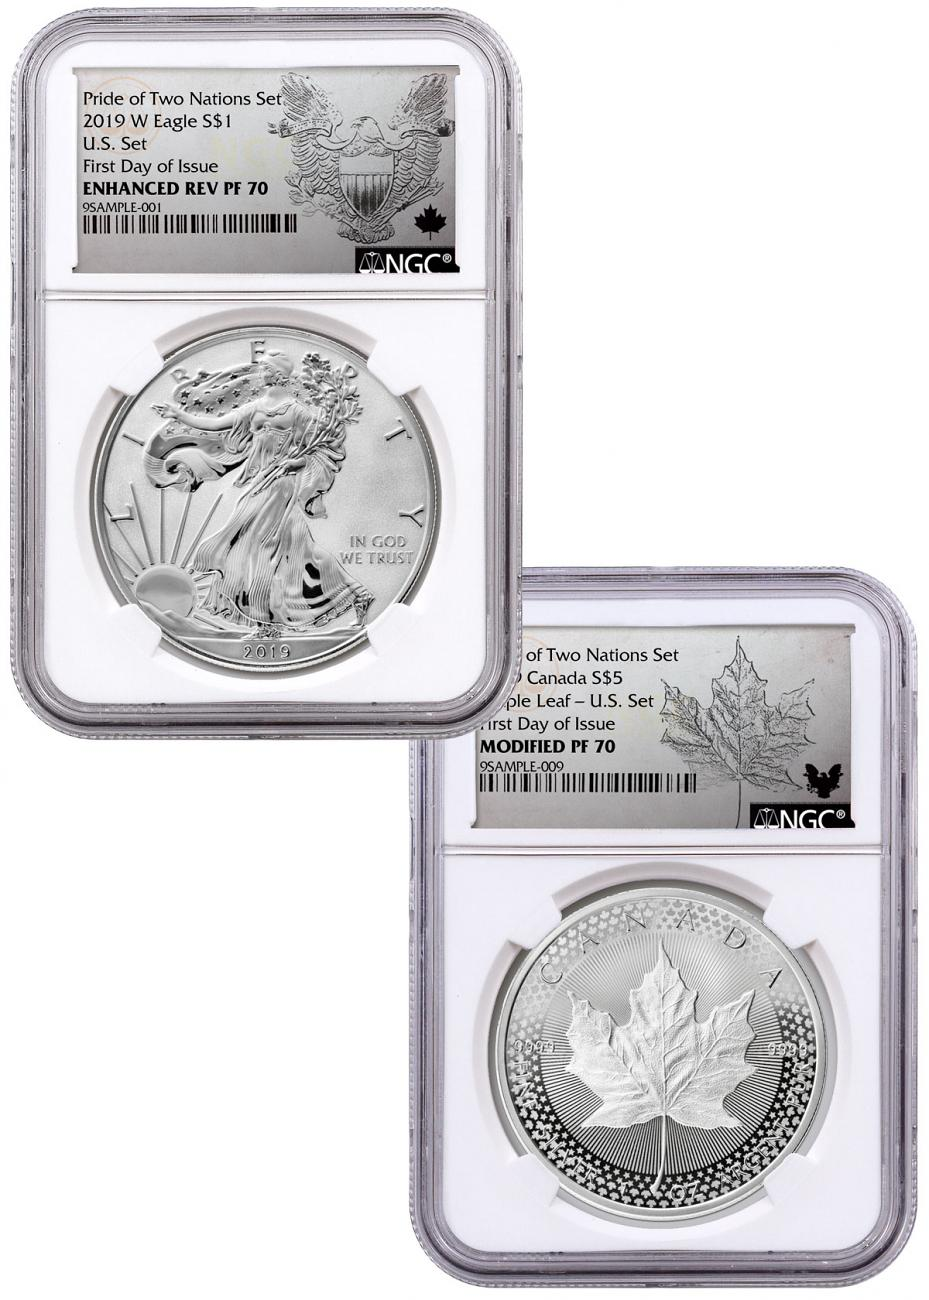 2019 United States & Canada 1-oz Silver Eagle & Maple Leaf - Pride of Two Nations 2-Coin US Mint Set NGC PF70 FDI Exclusive Eagle & Maple Labels with OGP